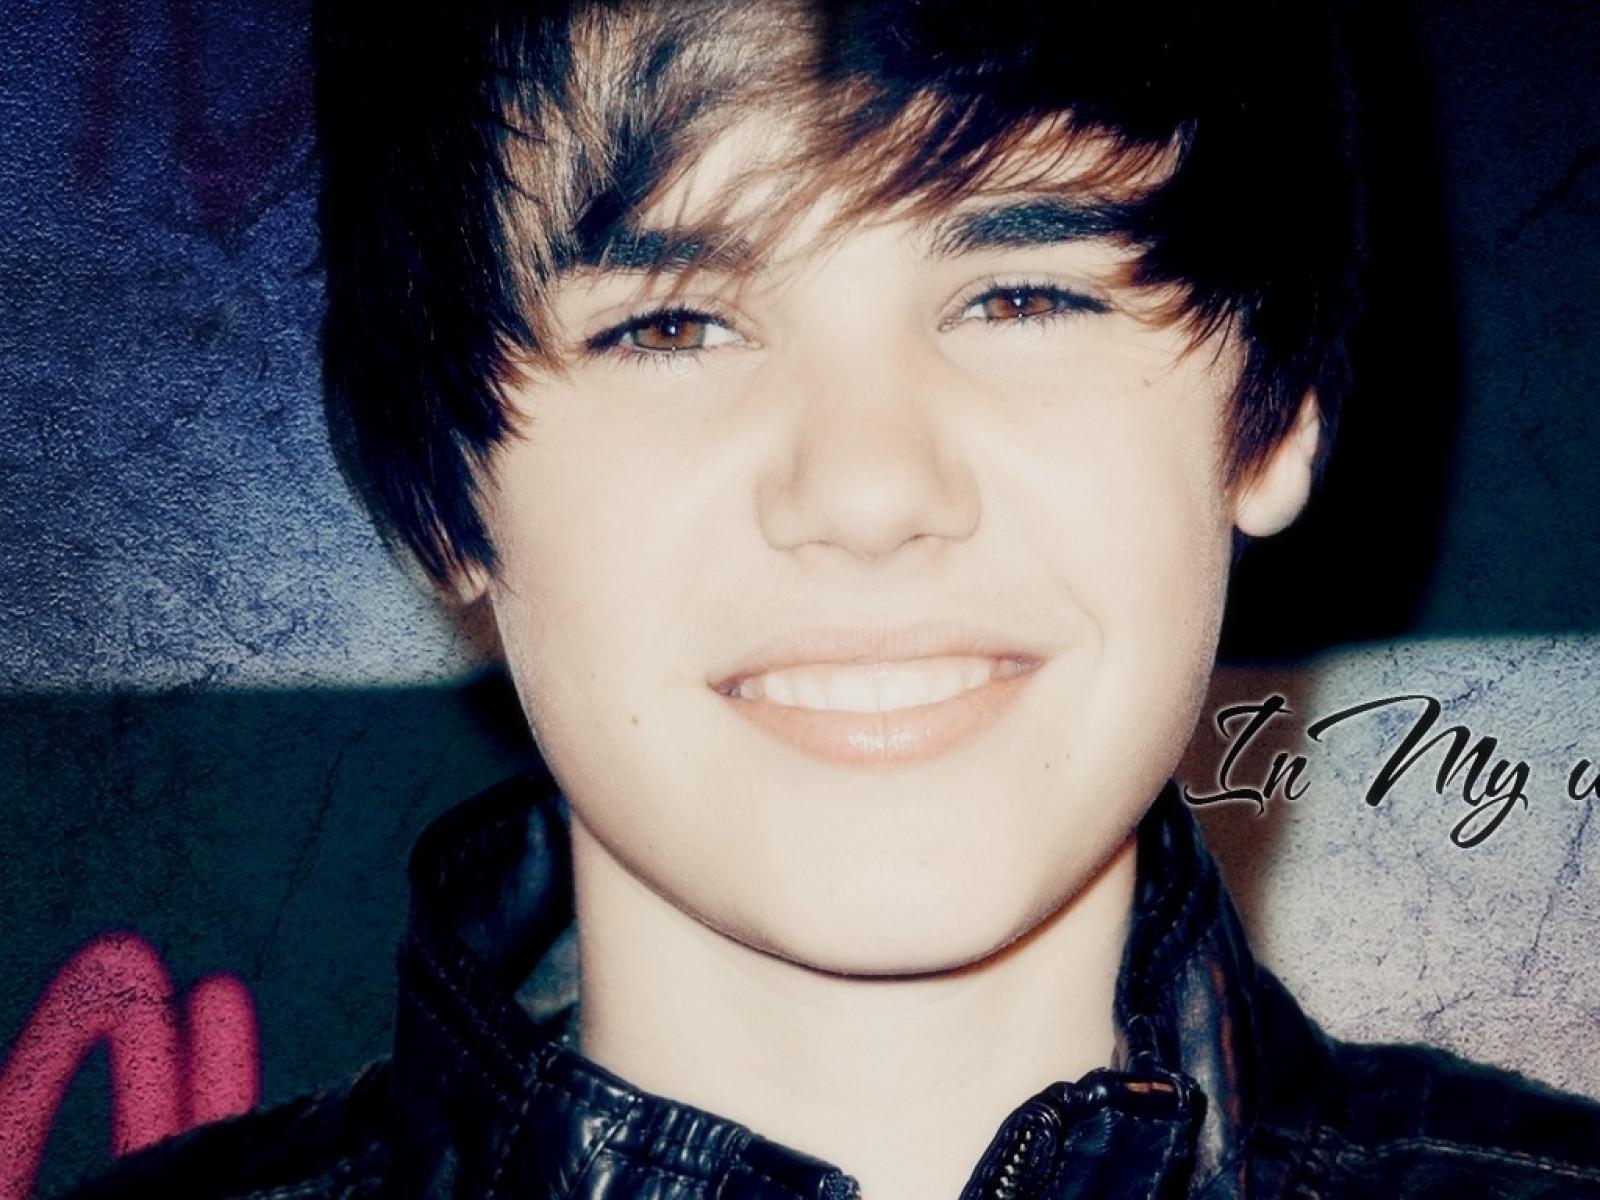 Download Justin Bieber Wallpapers 2011 Free Download Gallery